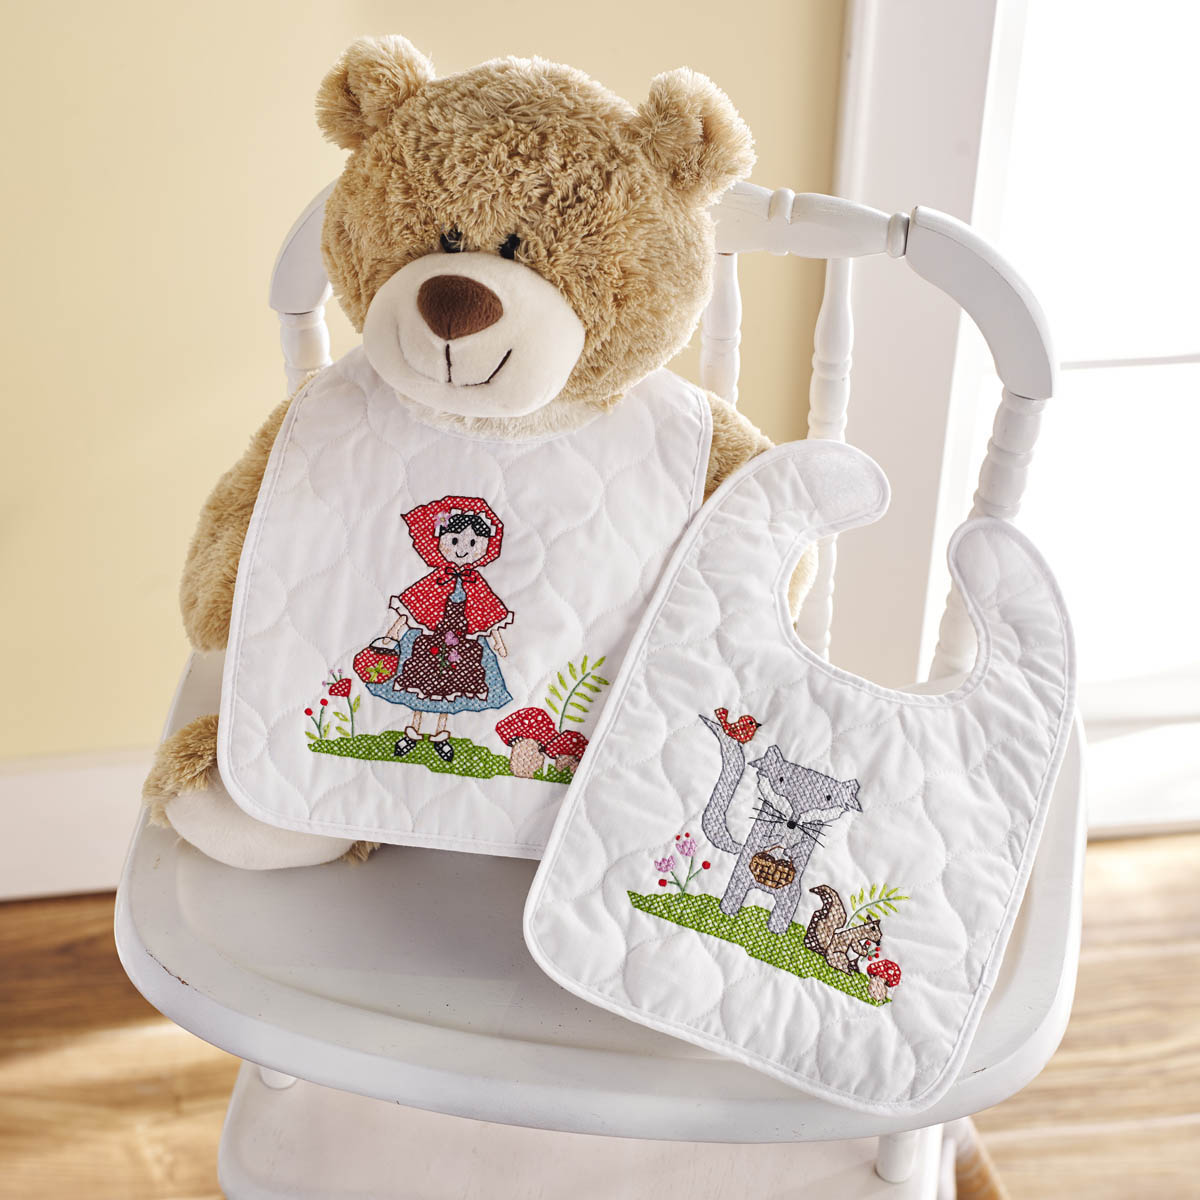 Bucilla ® Baby - Stamped Cross Stitch - Crib Ensembles - Little Red Riding Hood - Bib Pair Kit